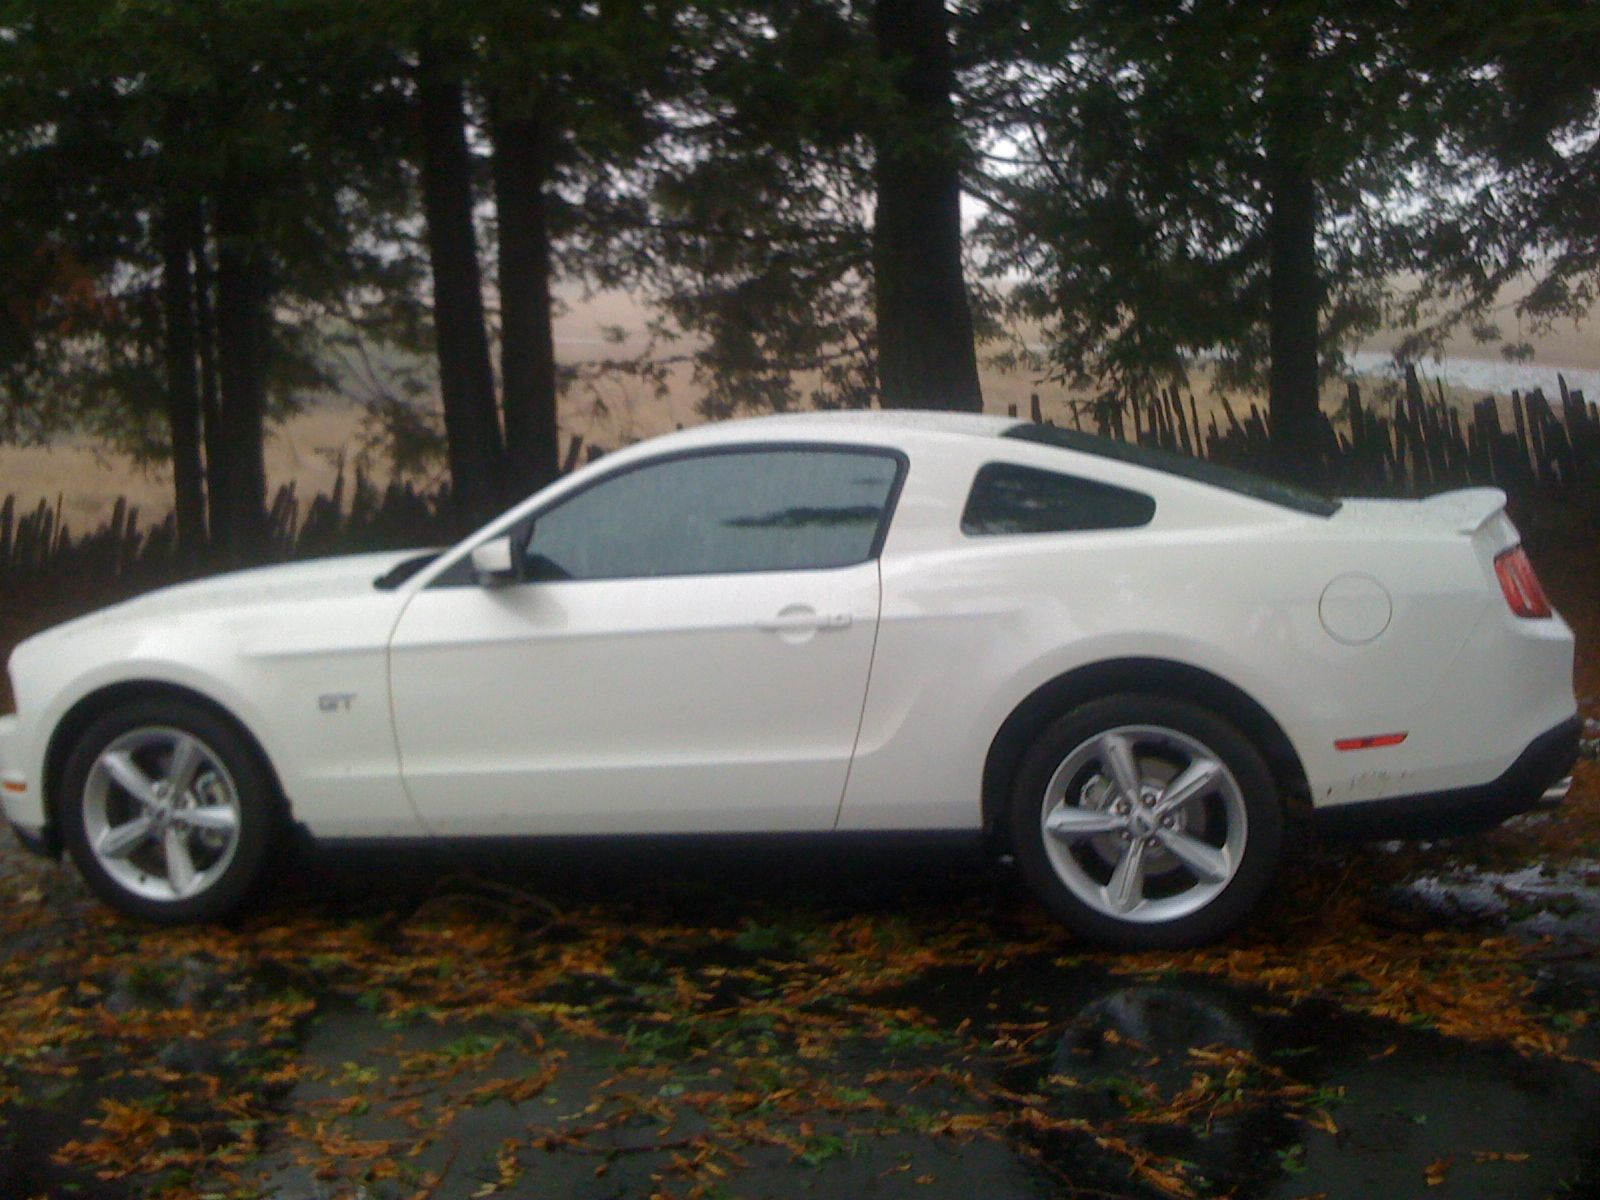 Affordable dream car white mustang 2010 gt it s only a matter of time